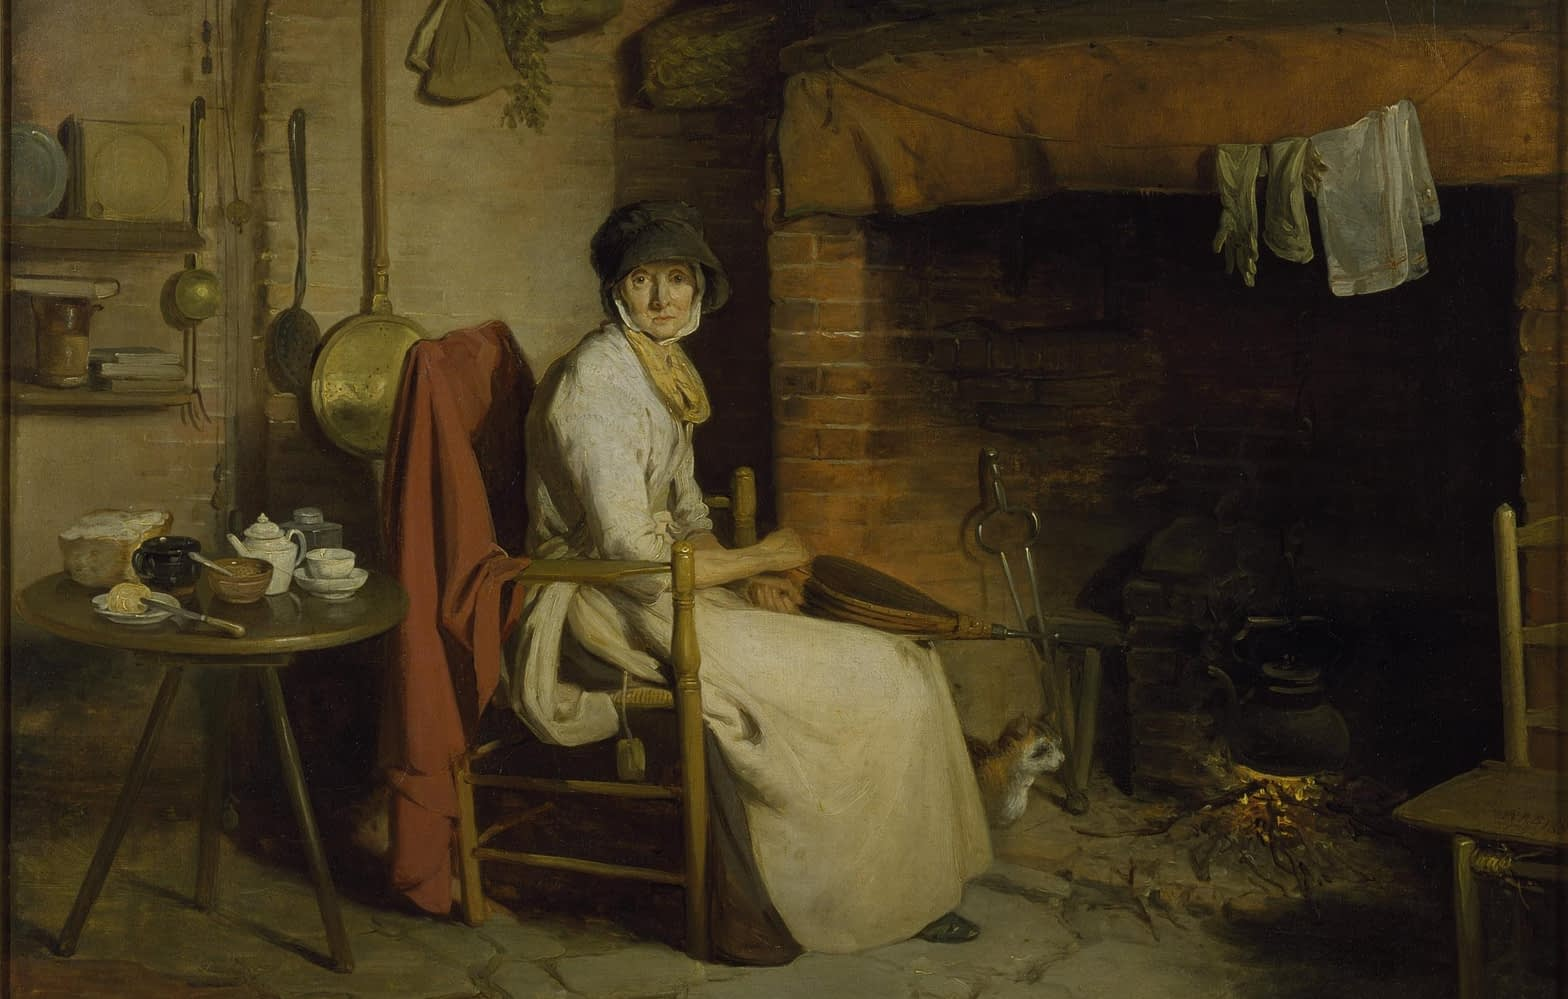 Oil painting, 'A Cottage Interior - an Old Woman Preparing Tea', William Redmore Bigg, 1793 © Victoria and Albert Museum, London